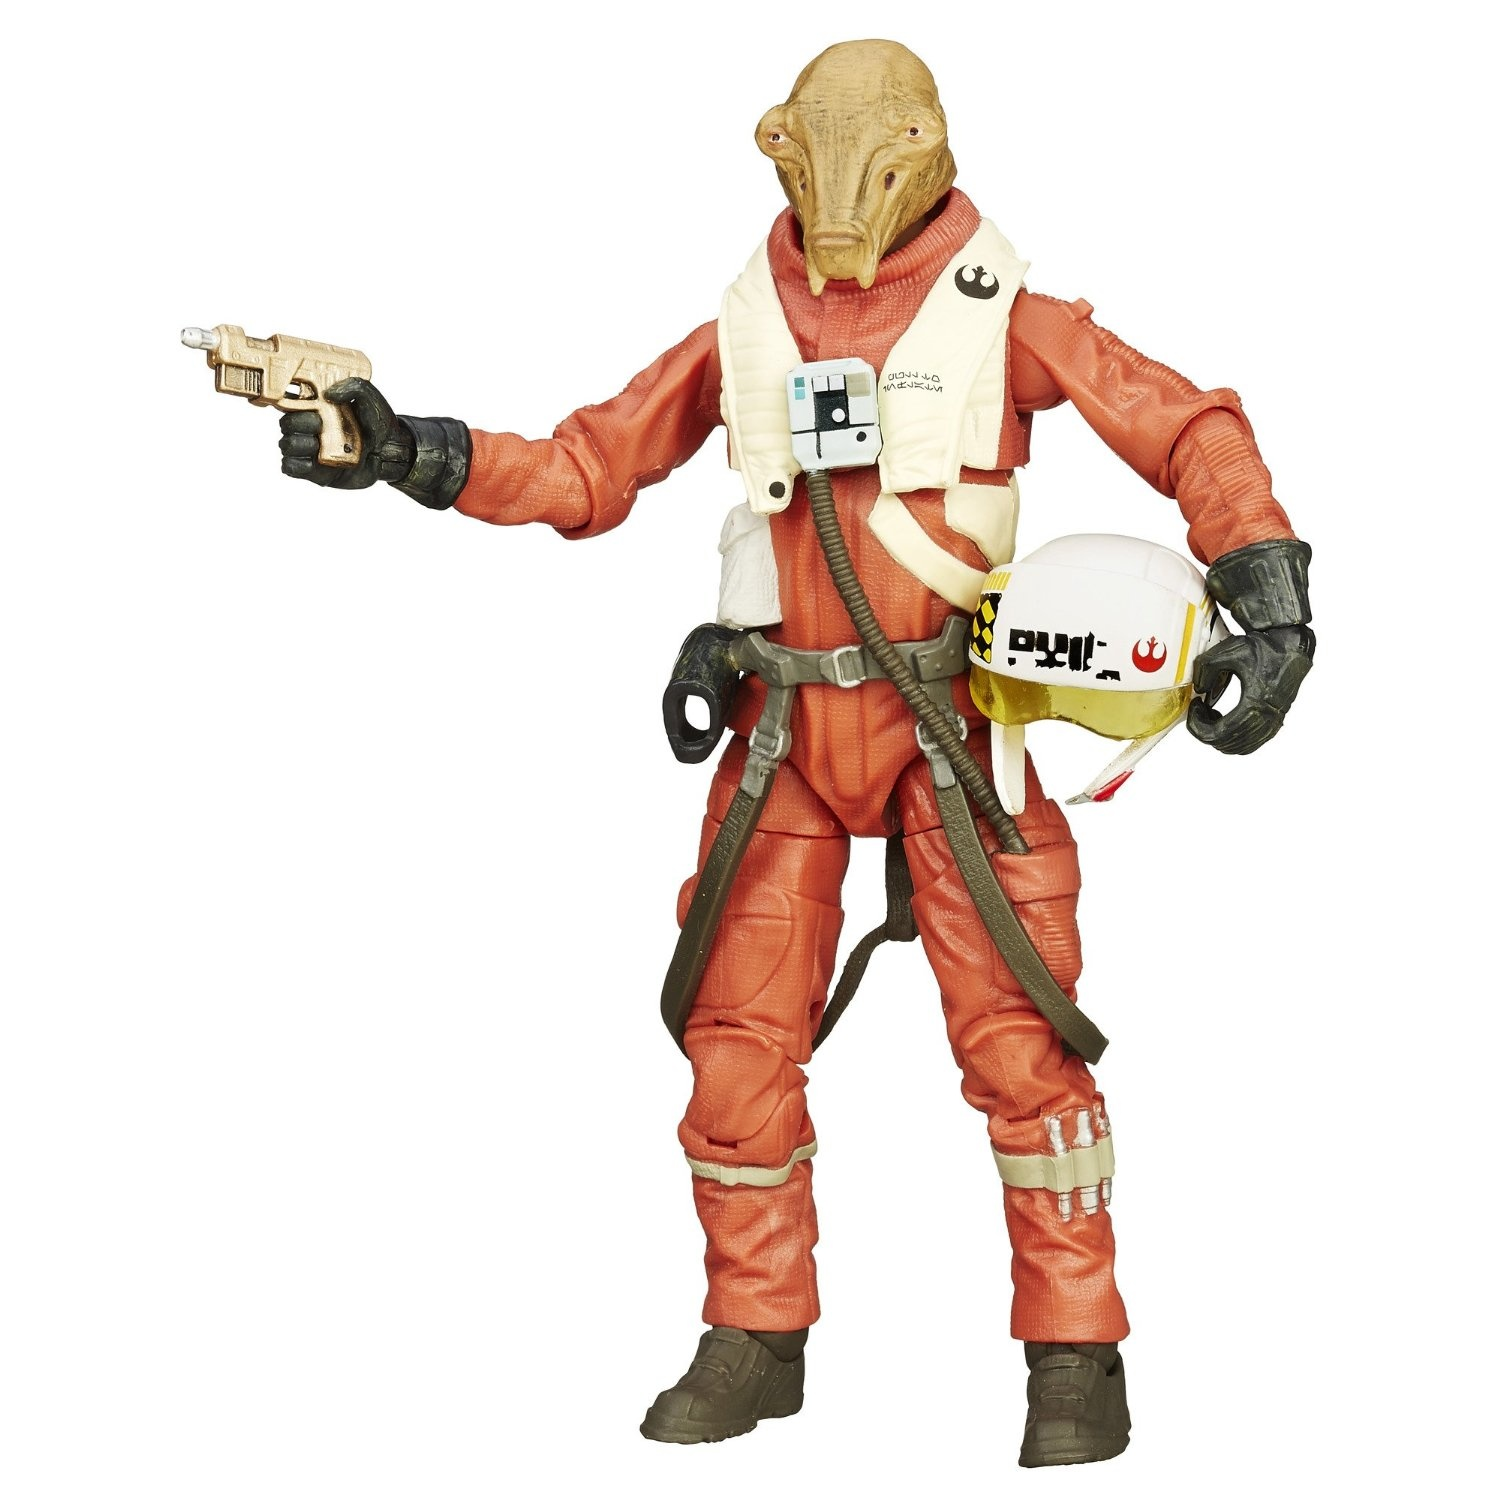 Star Wars Force Awakens X-Wing Pilot Asty 3.75 Inch Action Figure